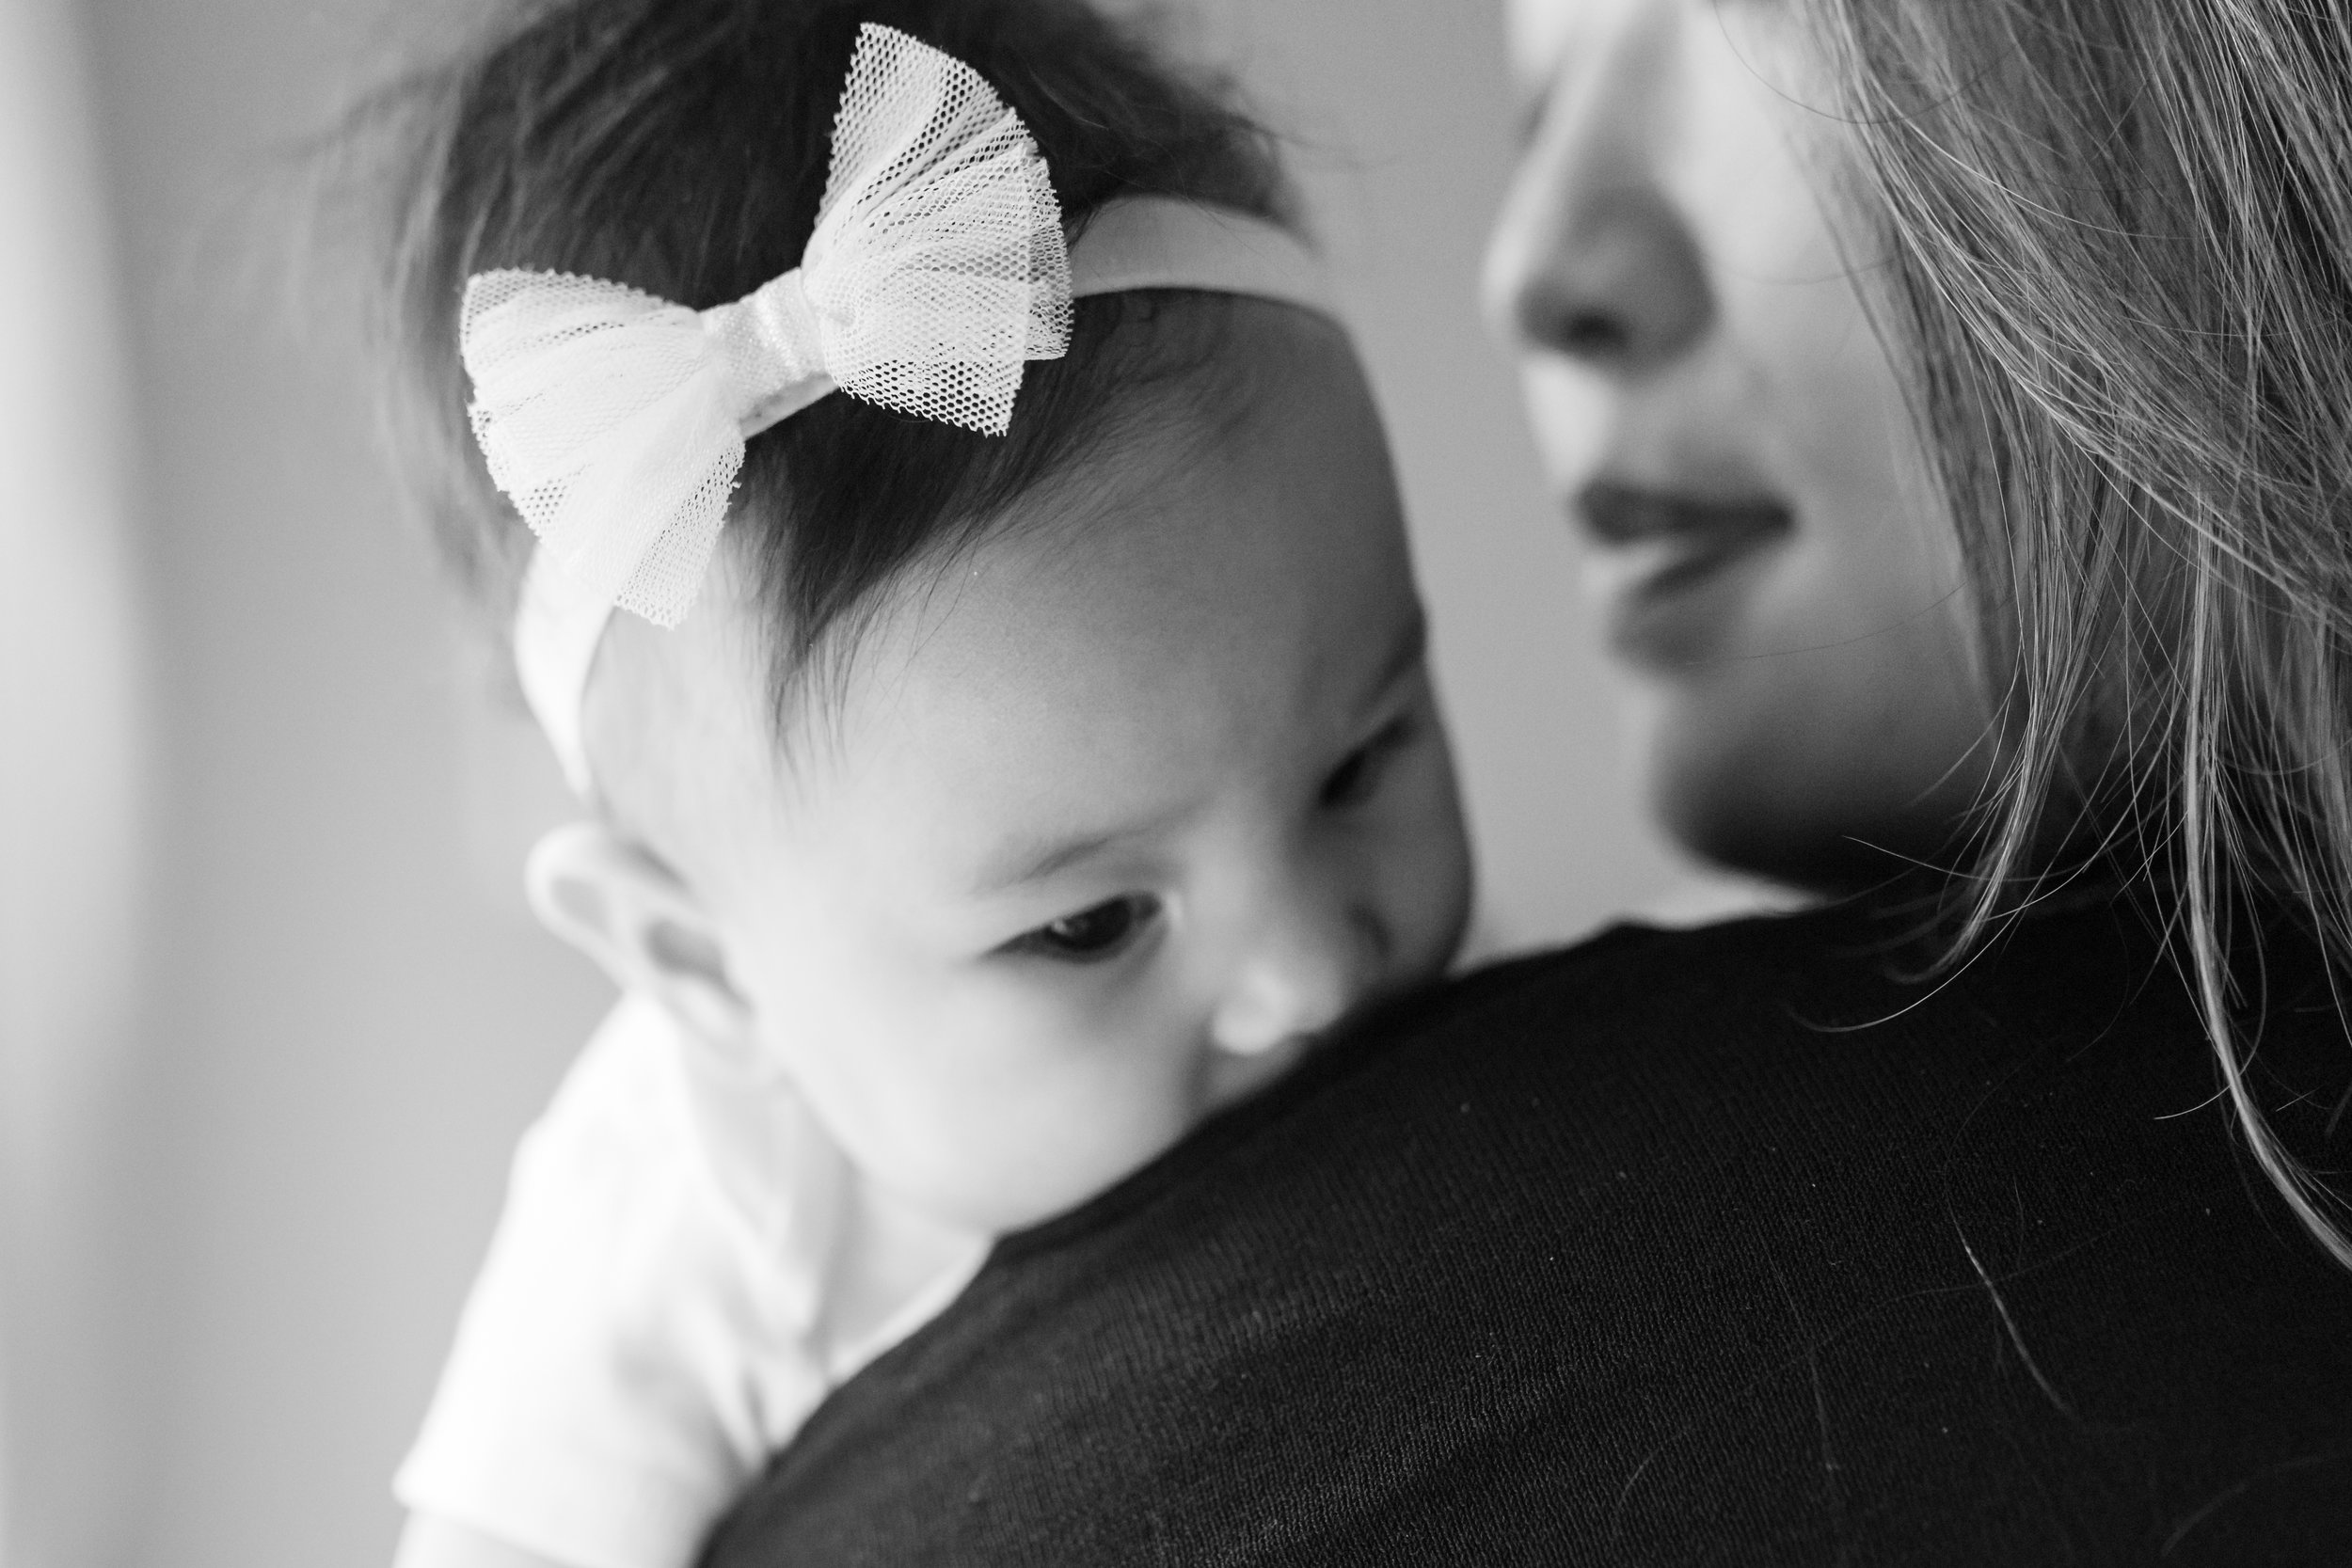 Black and white photograph of 4 months old baby girl in her mother's arms during an at home family session in NJ